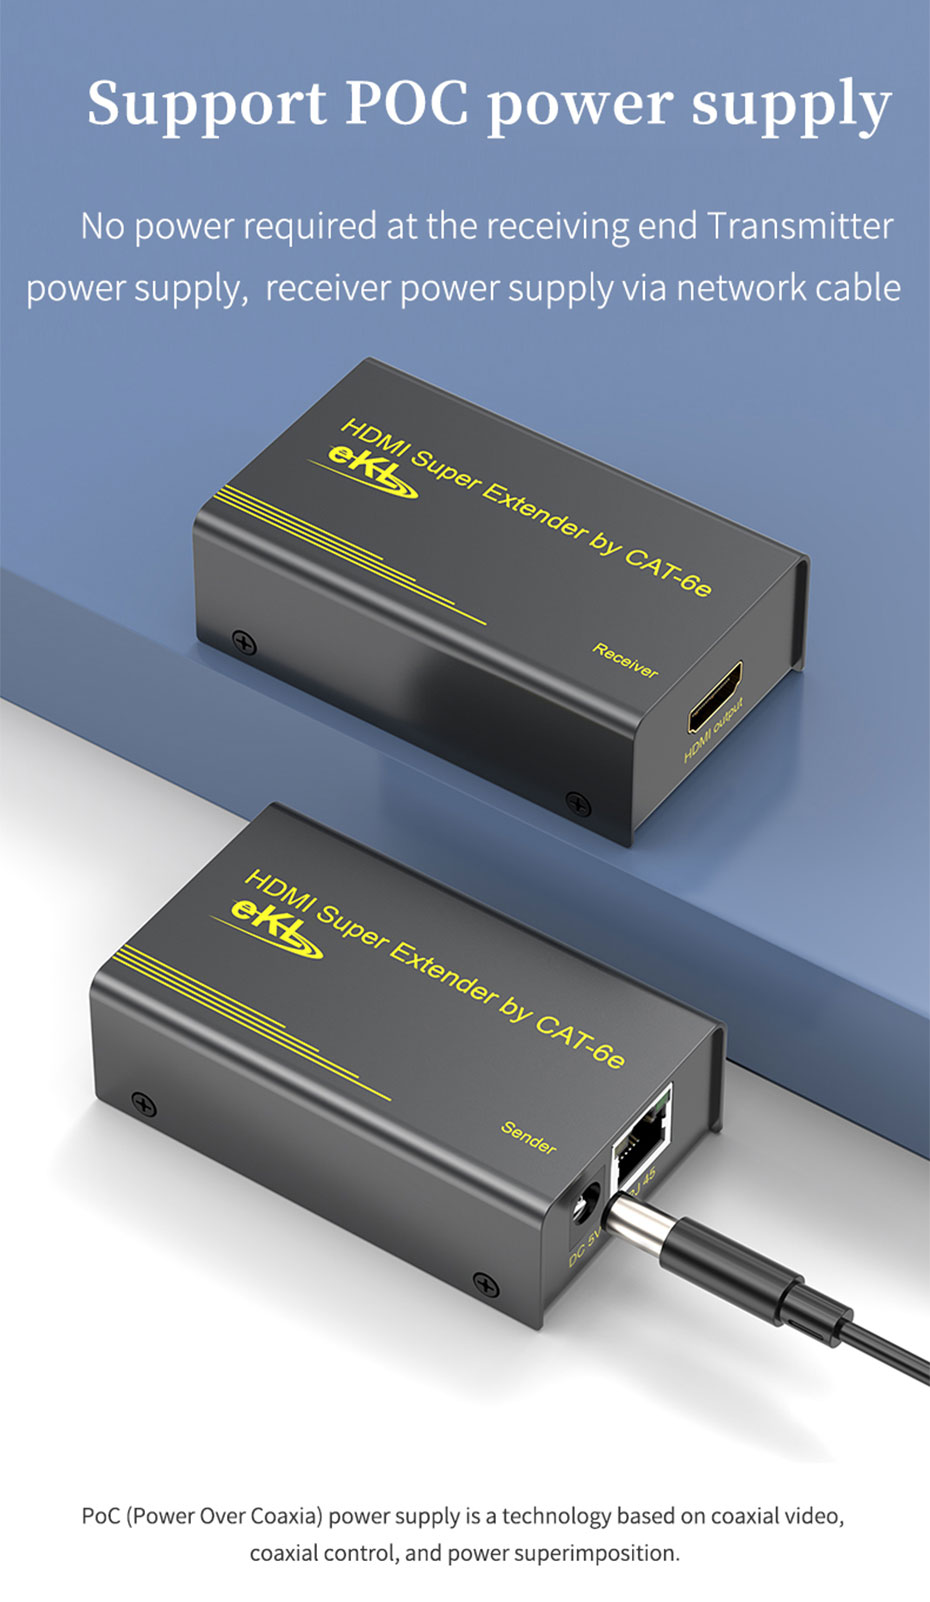 60m HDMI network cable extender HE60 supports POC power supply function